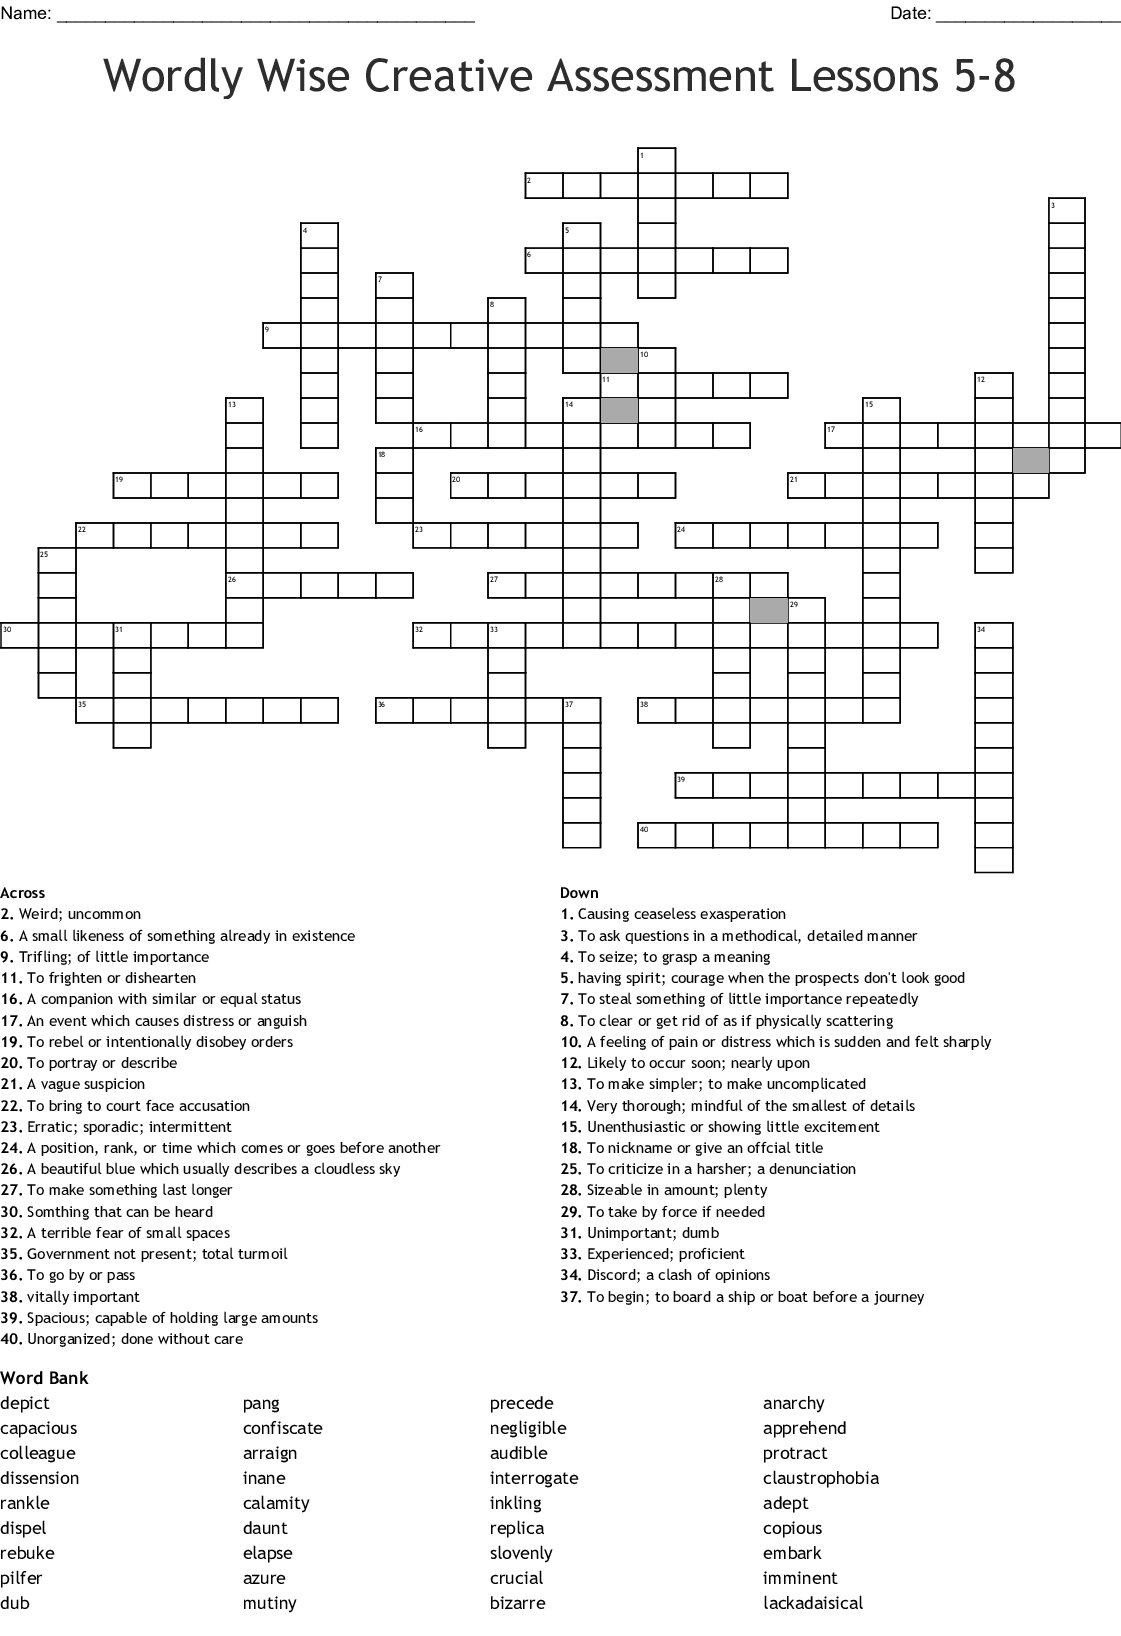 Wordly Wise Creative Assessment Lessons 5 8 Crossword